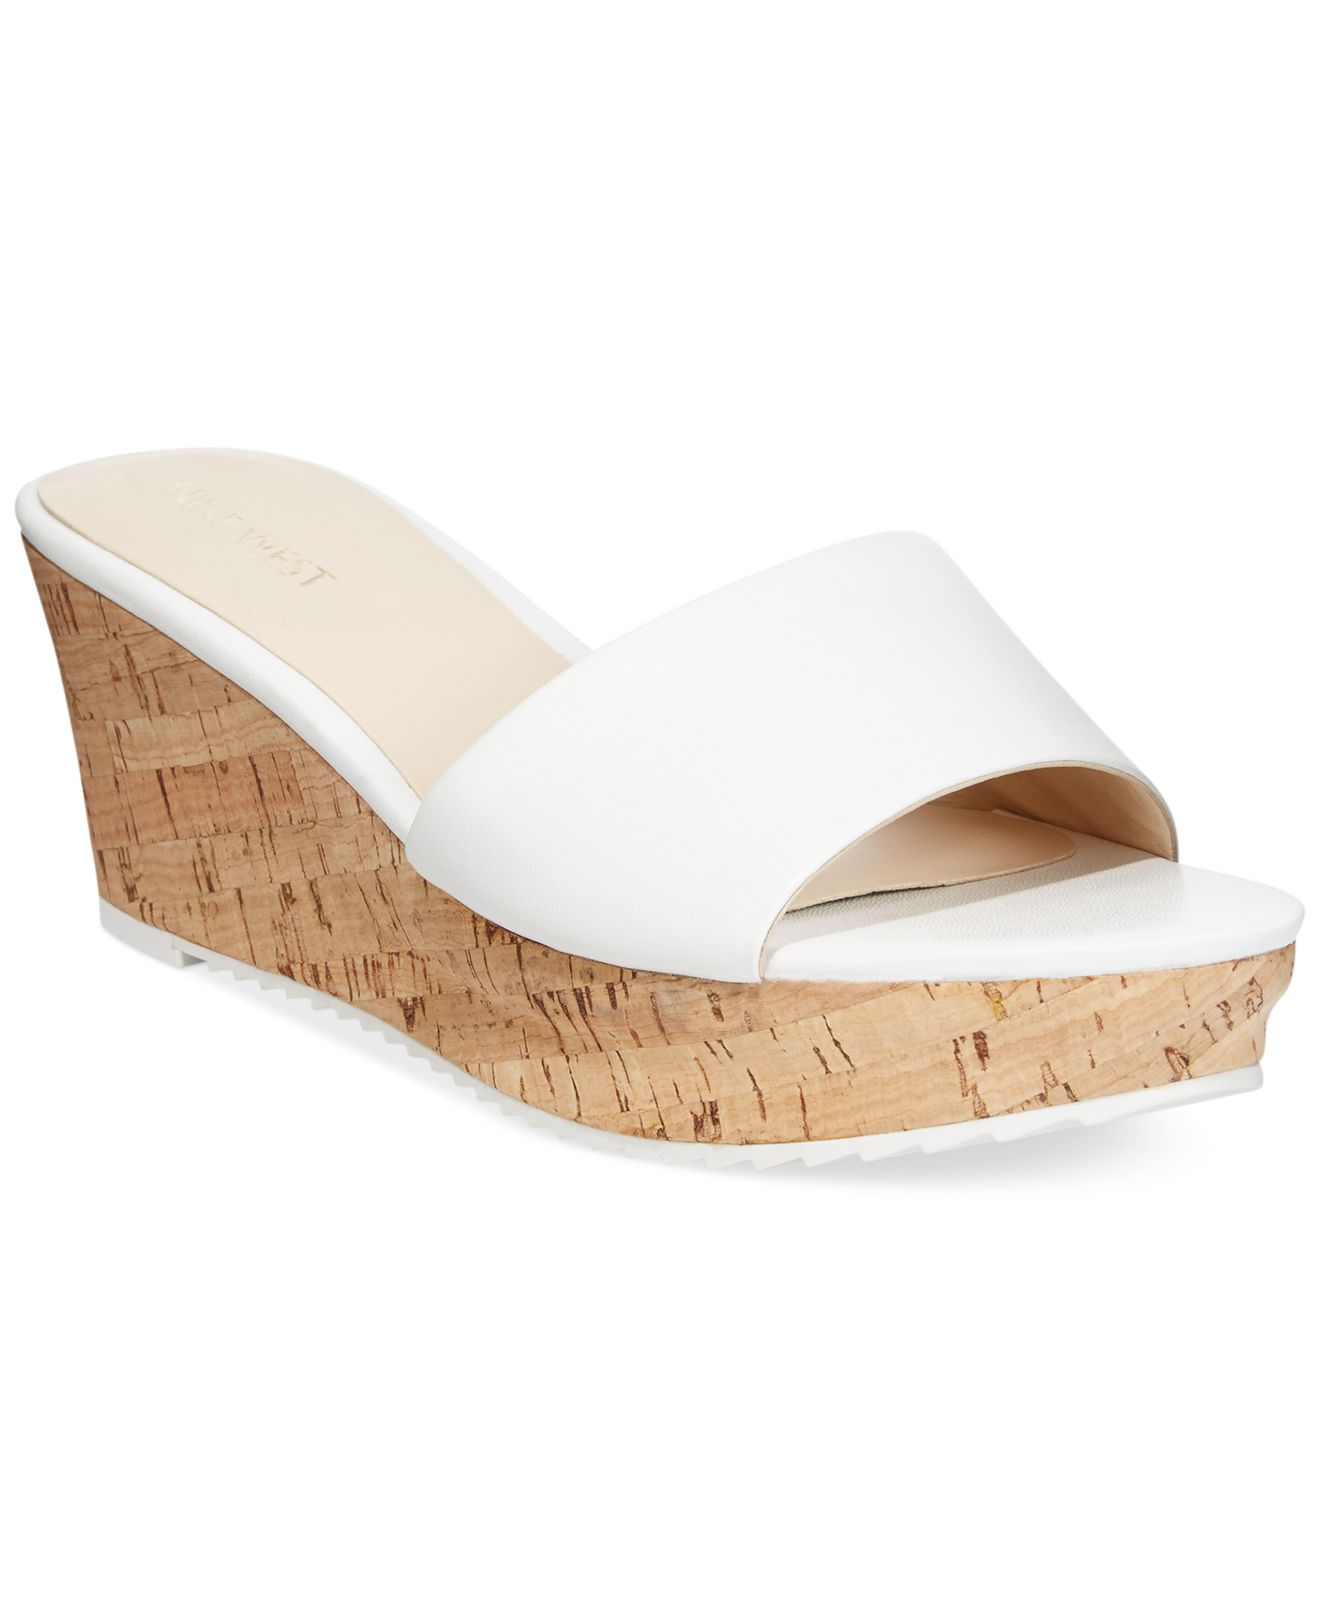 Nine west Confetty Platform Slide Sandals in White | Lyst